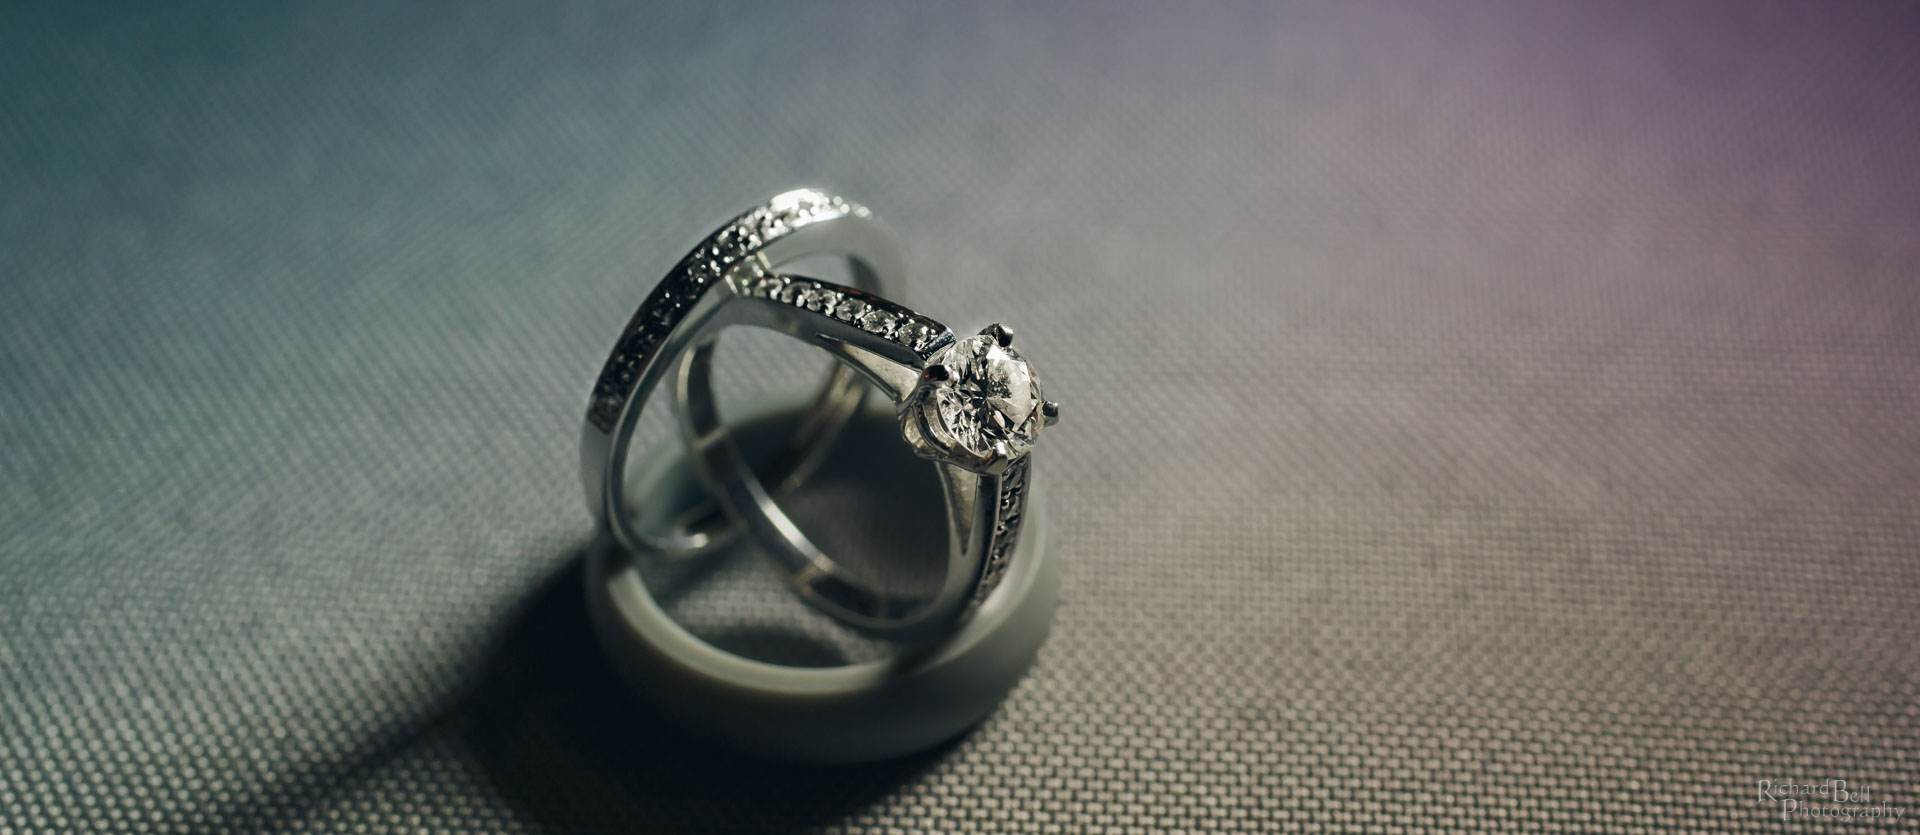 Rustman Wedding Rings